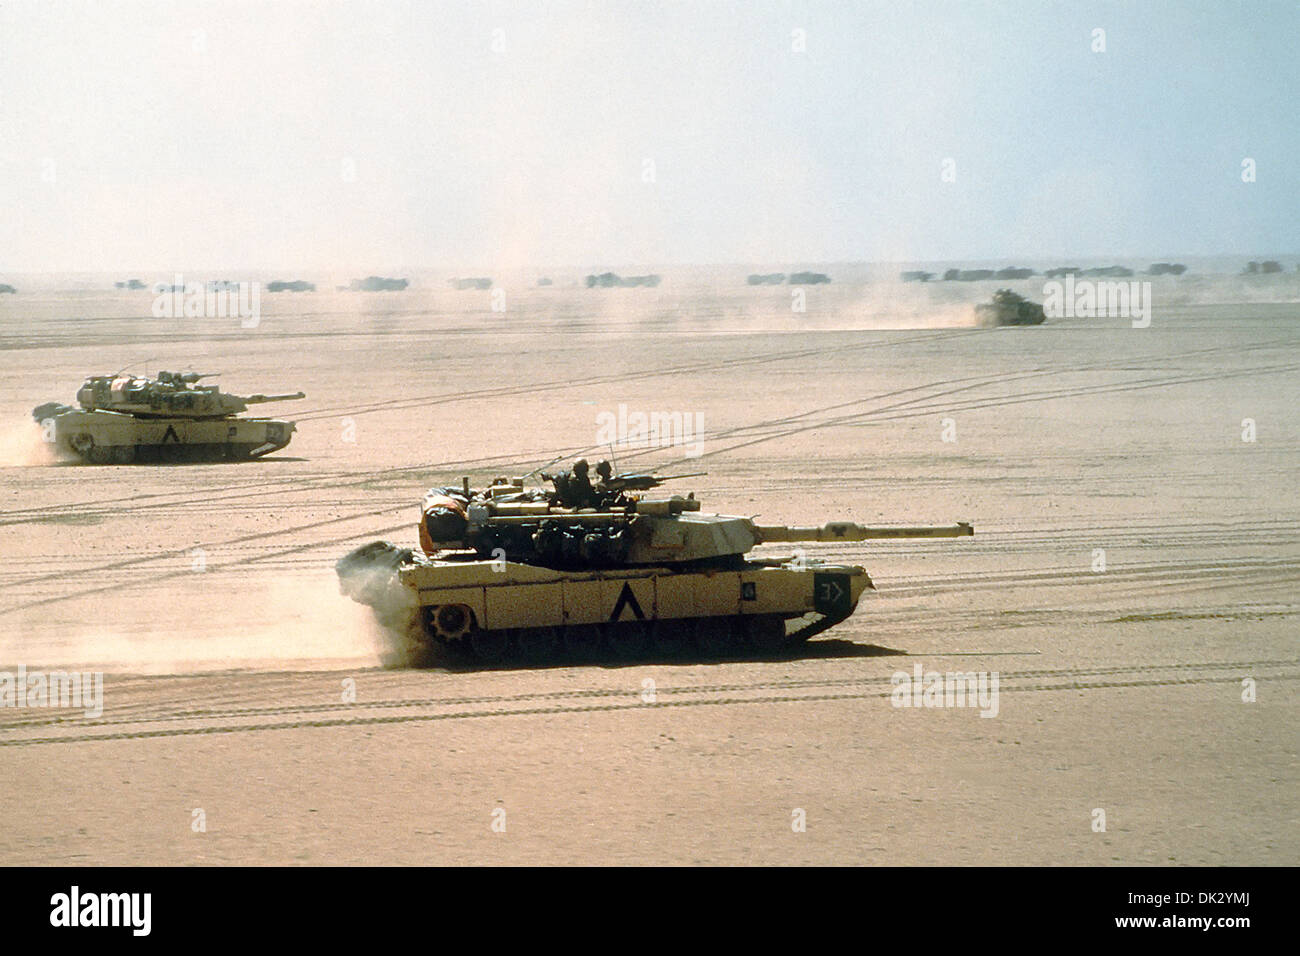 A US Army M-1A1 Abrams main battle tank from the 3rd Armored Division, moves across the desert into Kuwait during Operation Desert Storm February 15, 1991 in Kuwait. - Stock Image